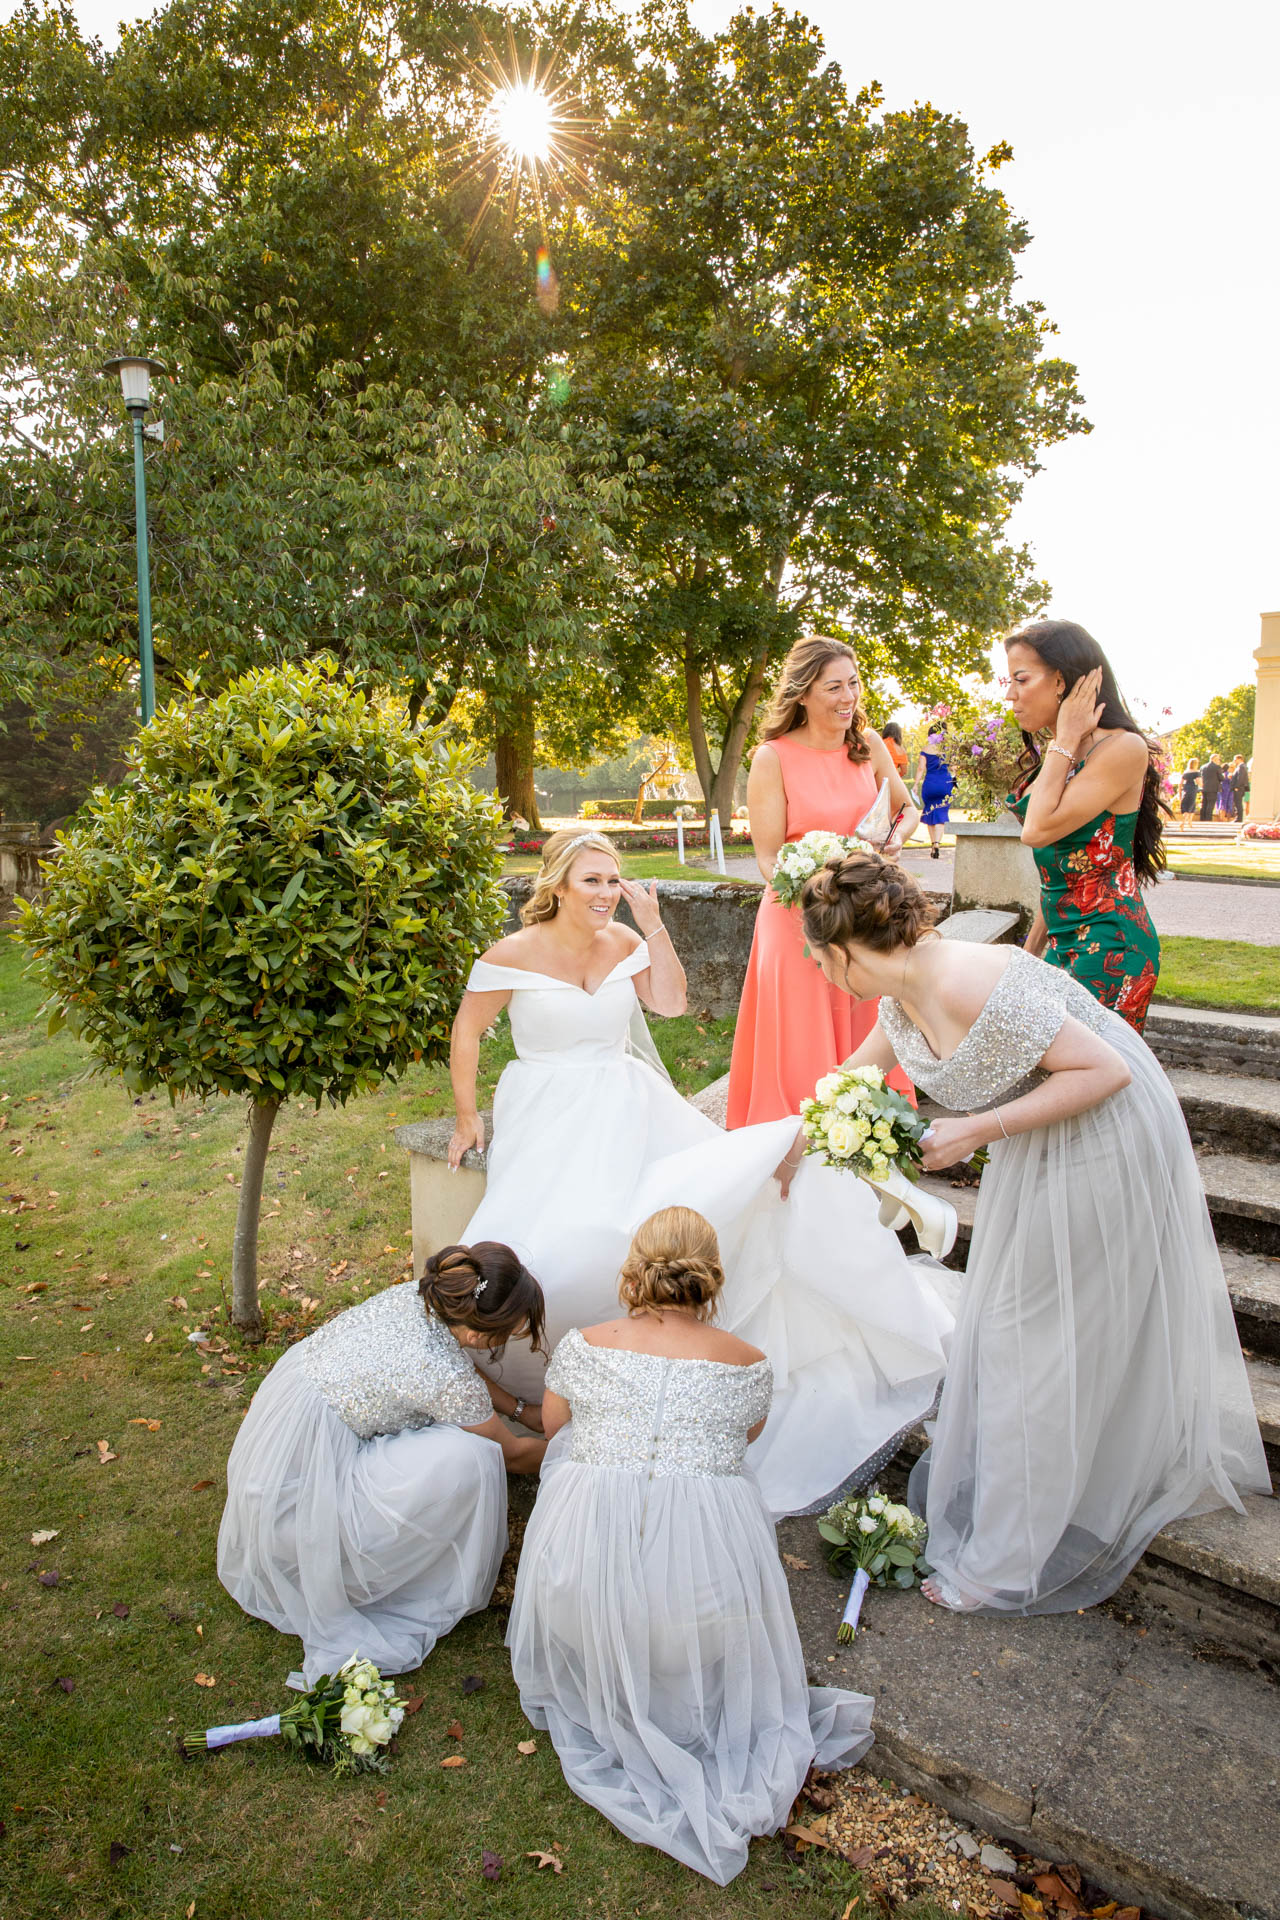 Wedding reception reportage photograph of bride and bridesmaids at The Lawn Rochford Essex